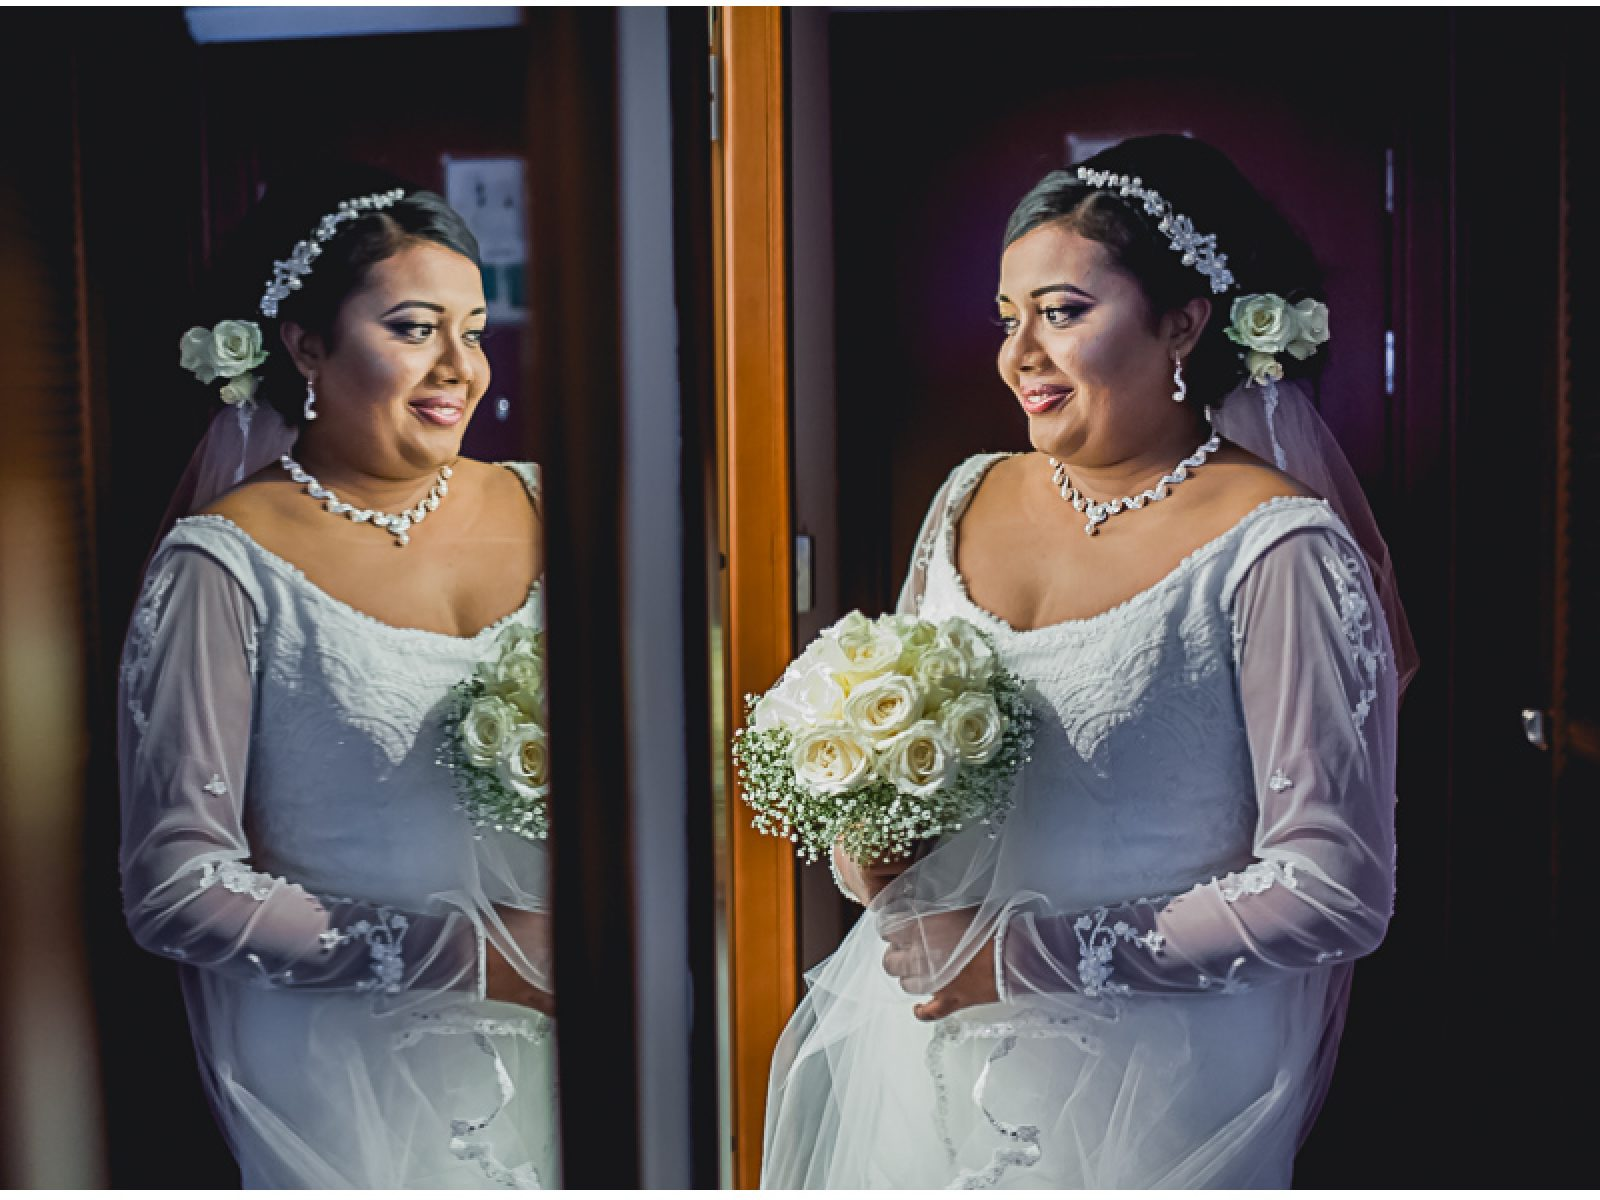 161 1600x1200 - Darshani and Anthony - wedding photographer in London